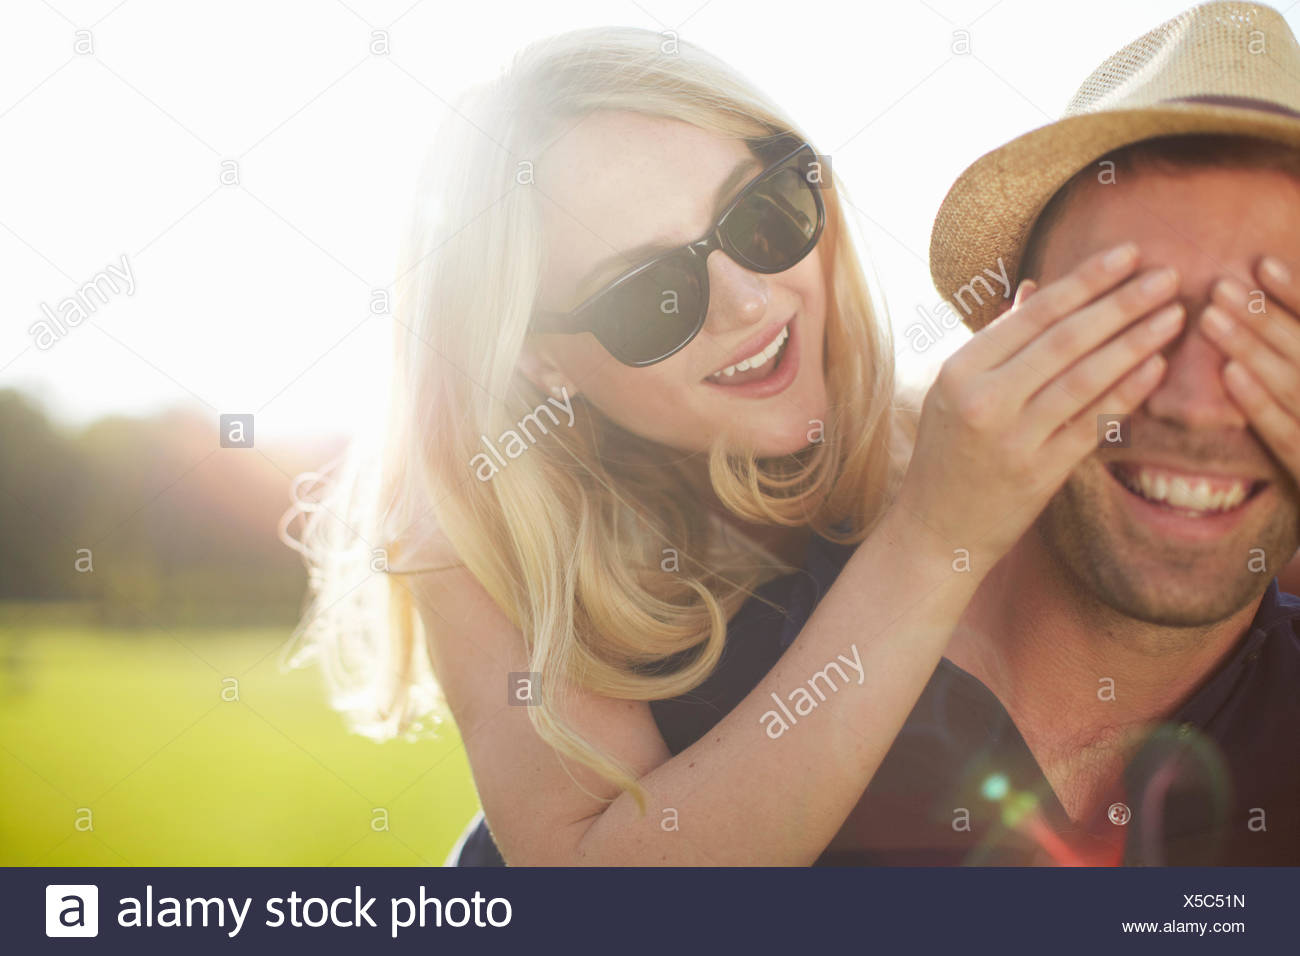 Young woman covering boyfriend's eyes in park - Stock Image